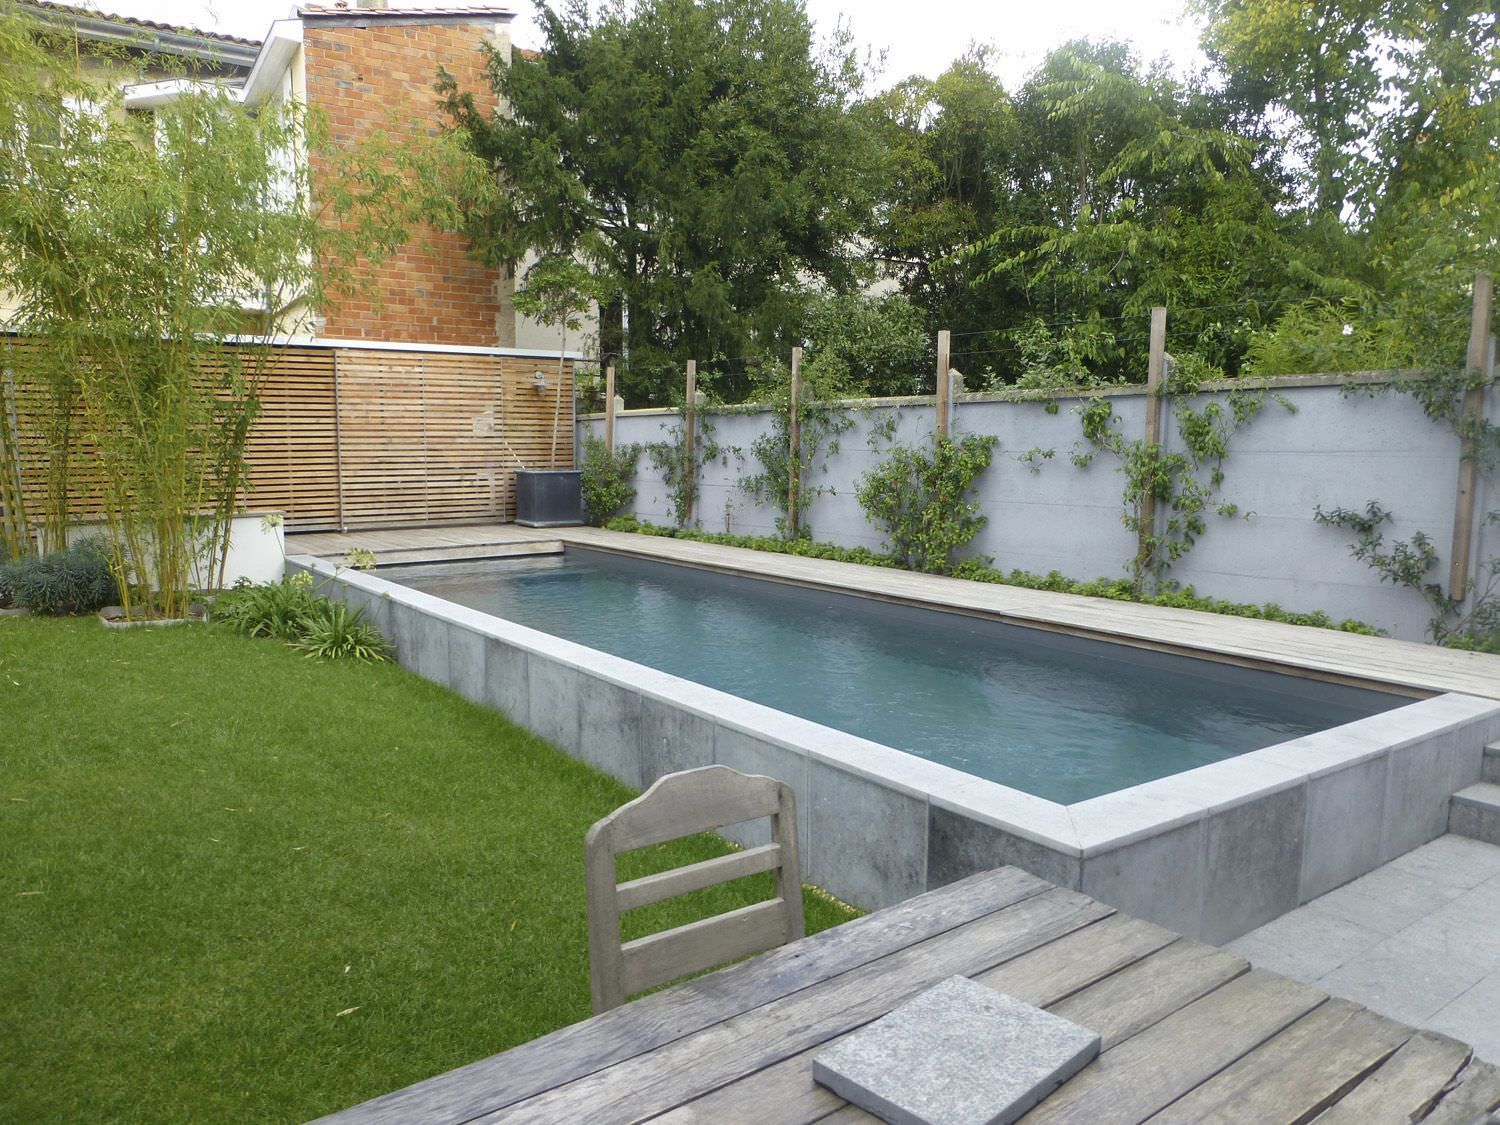 Piscine semi enterr e en b ton plouf pinterest for Petite piscine semi enterree